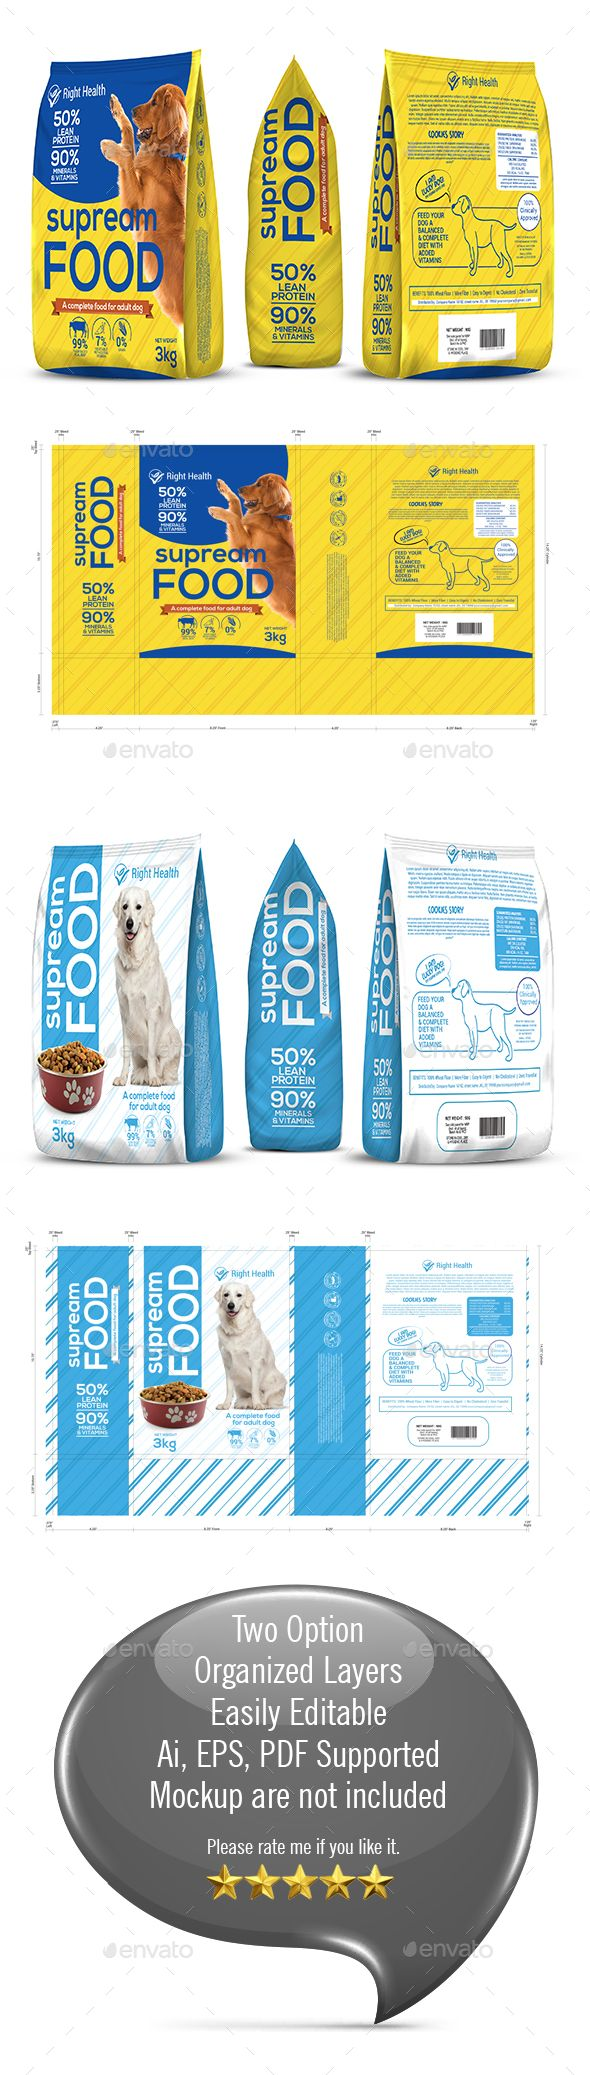 Dog Supplement Packaging Template-2 | Alimentos